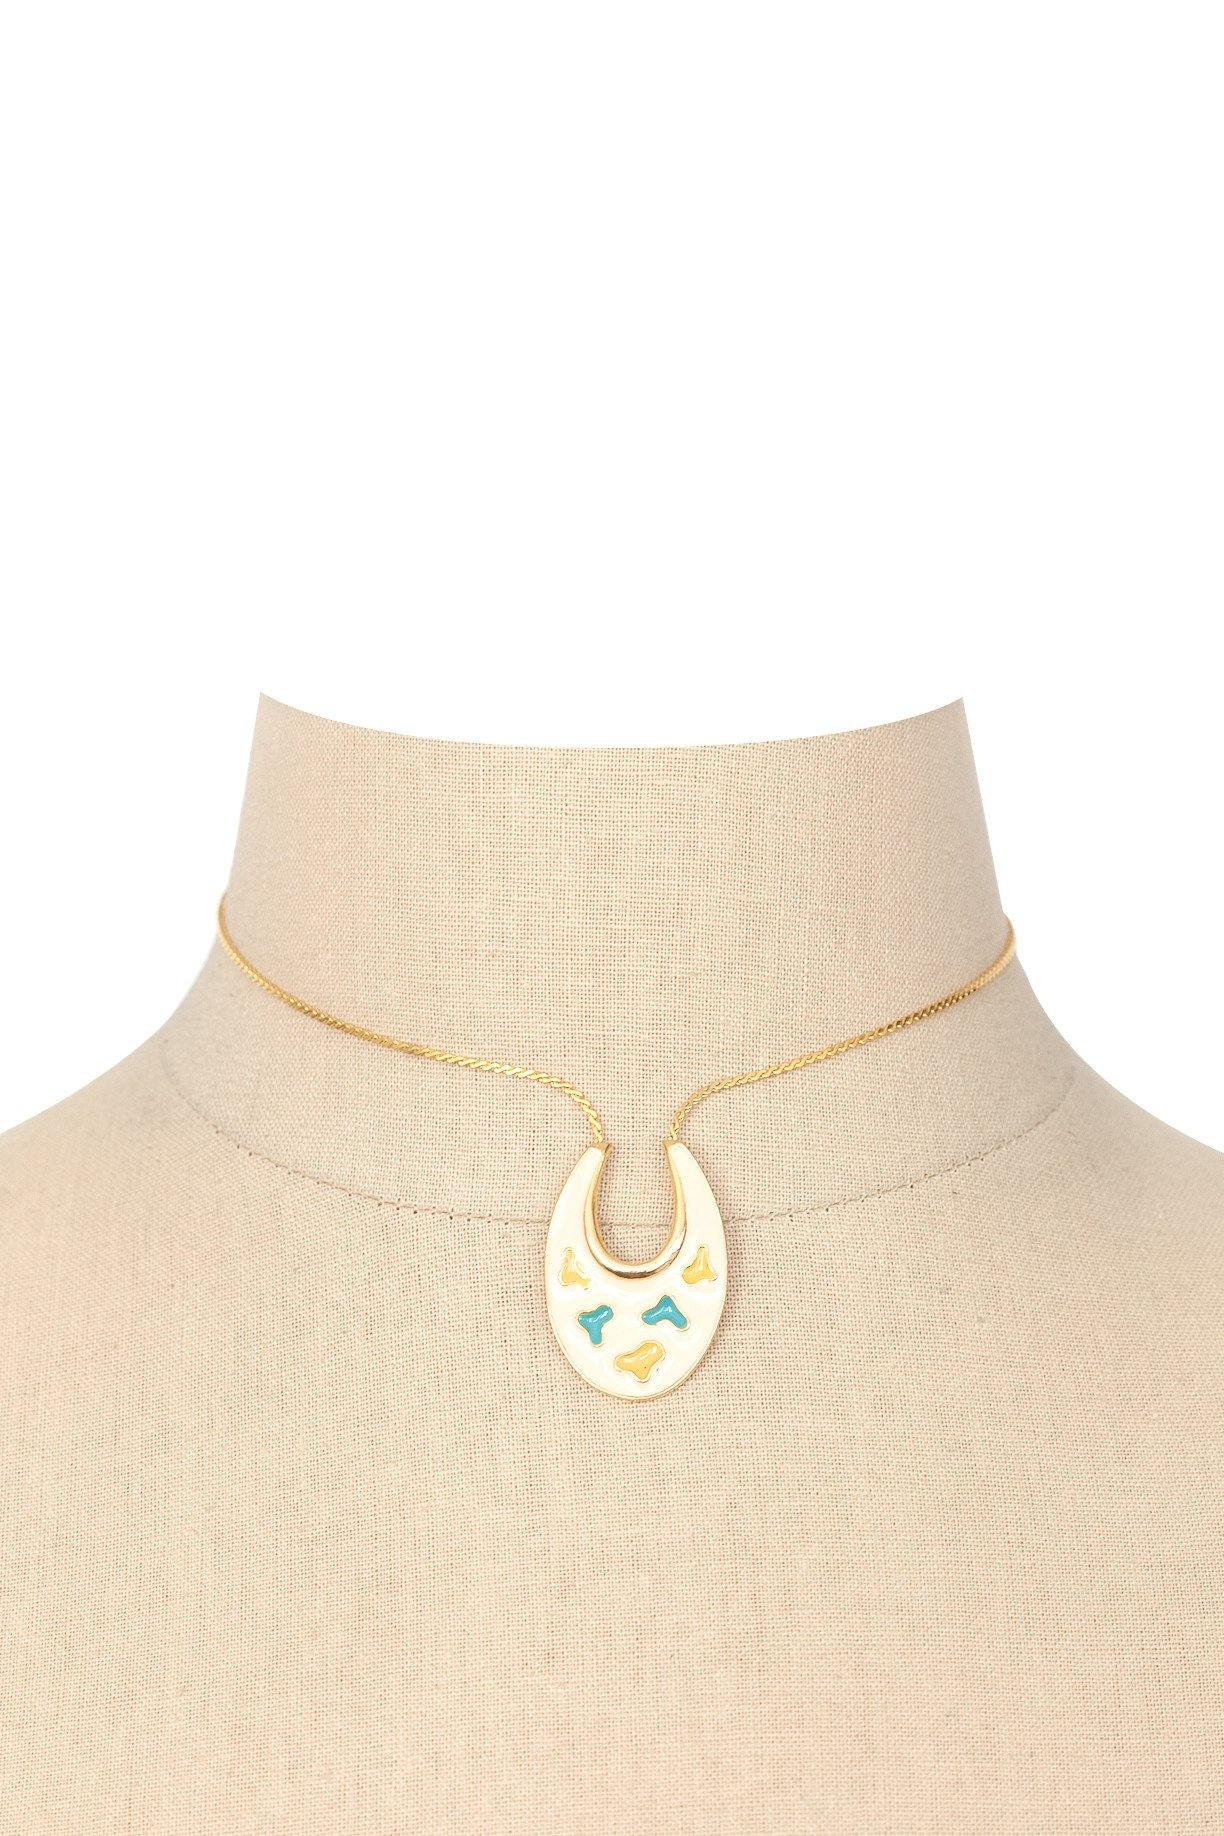 60's Art Enameled Pendant Necklace